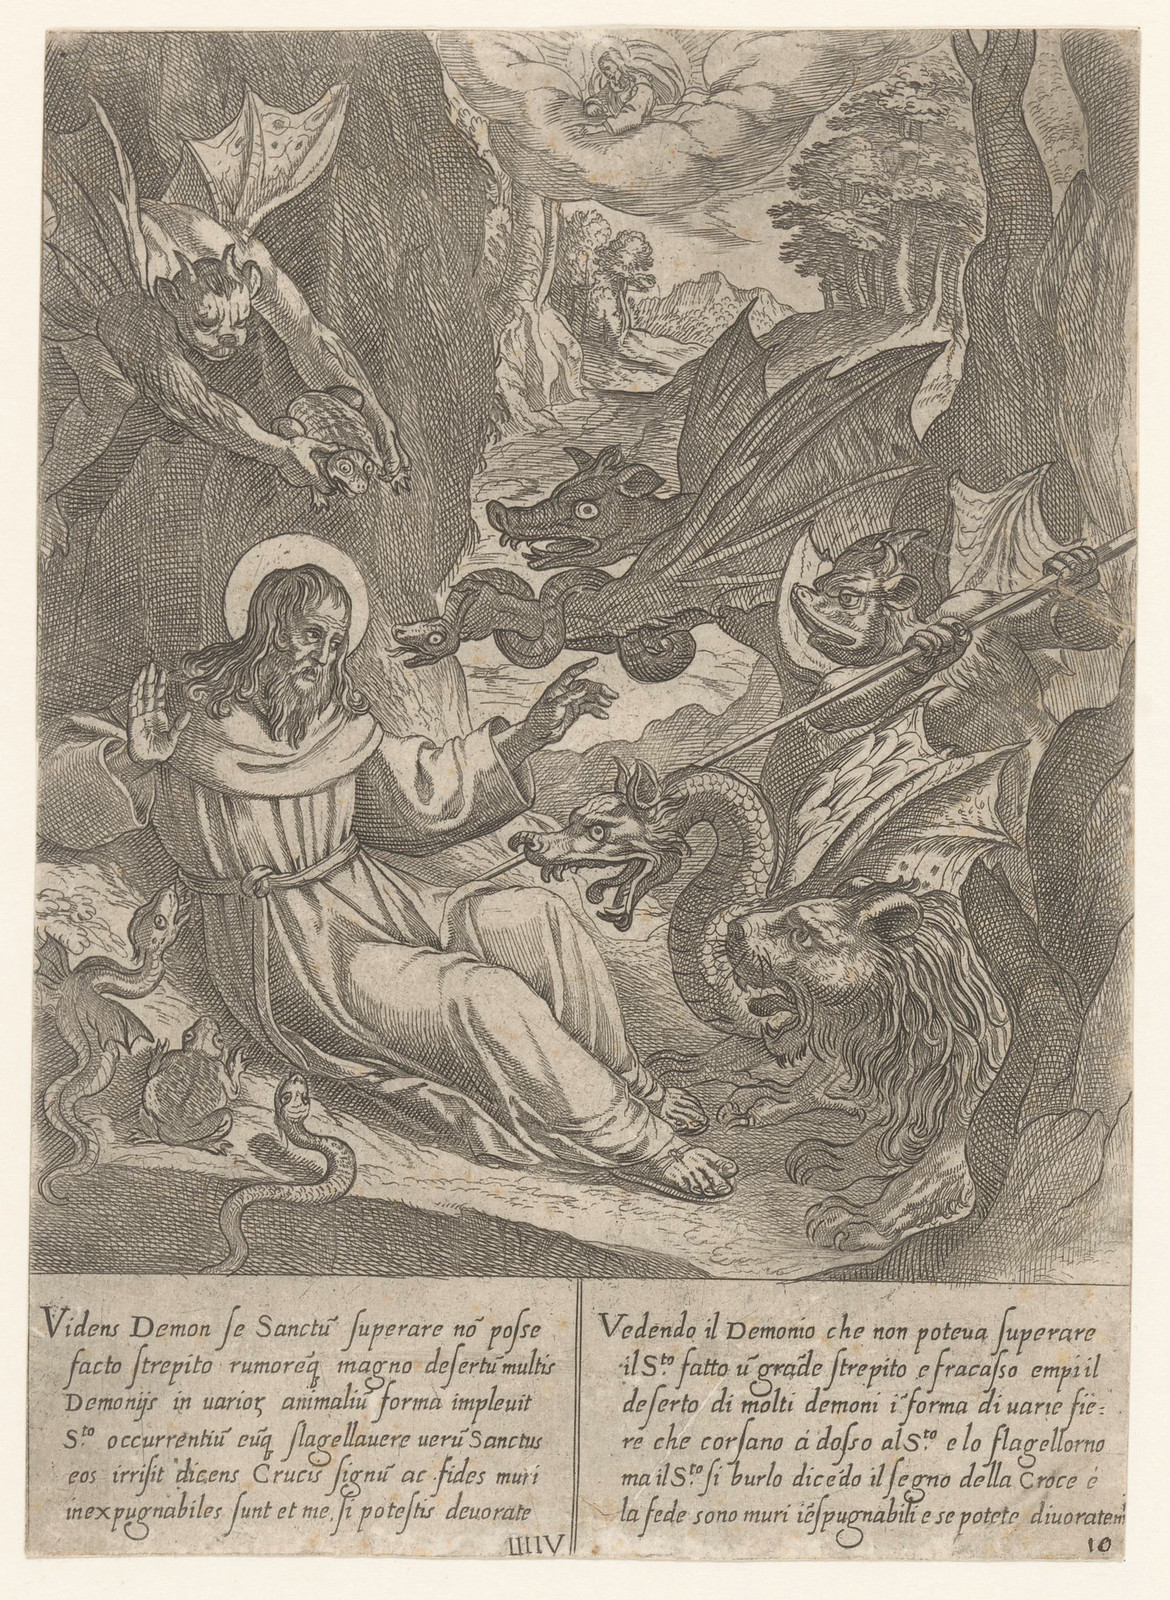 Antonio Tempesta, after Niccolo Circignani and Giovanni Battista Lombardelli - Saint Anthony With Demons - 03, 1598